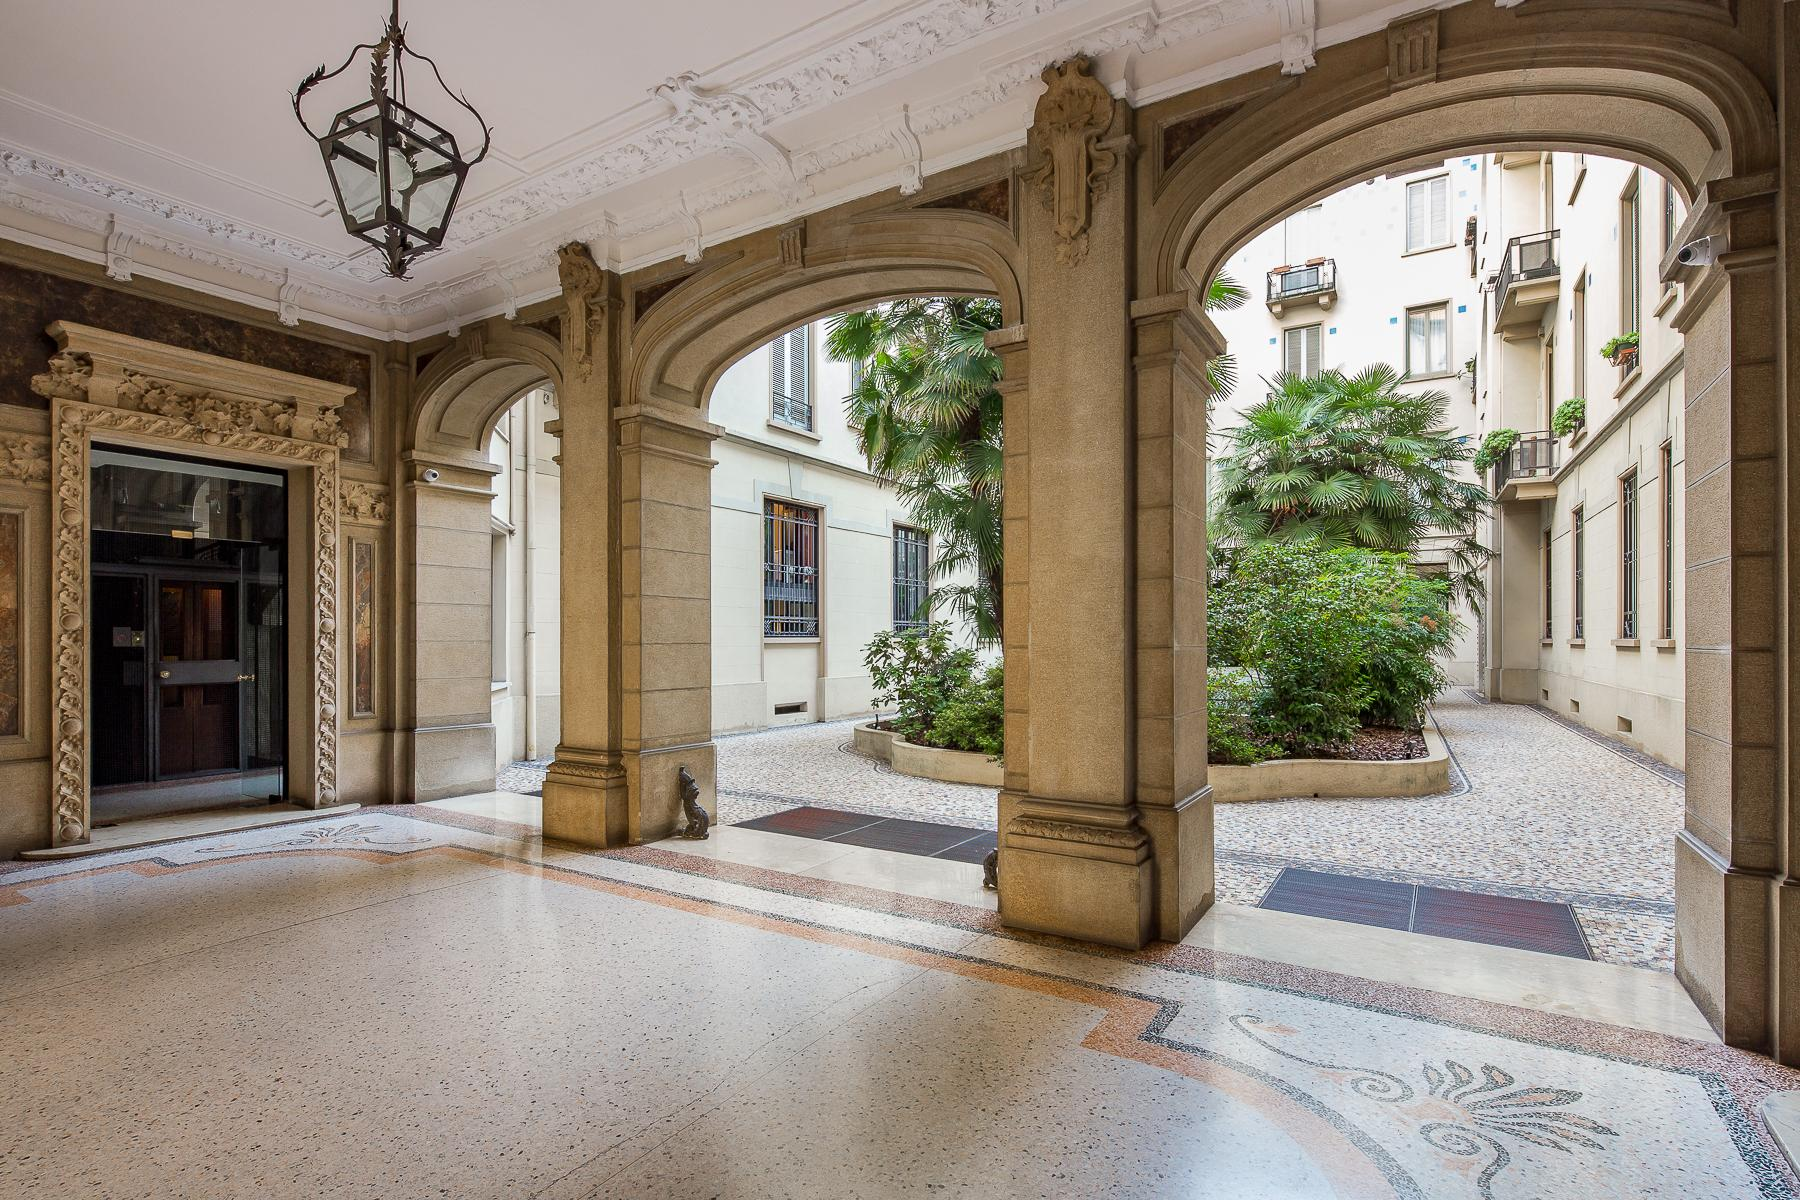 Charming penthouse with roof terrace in an elegant historic building - 22